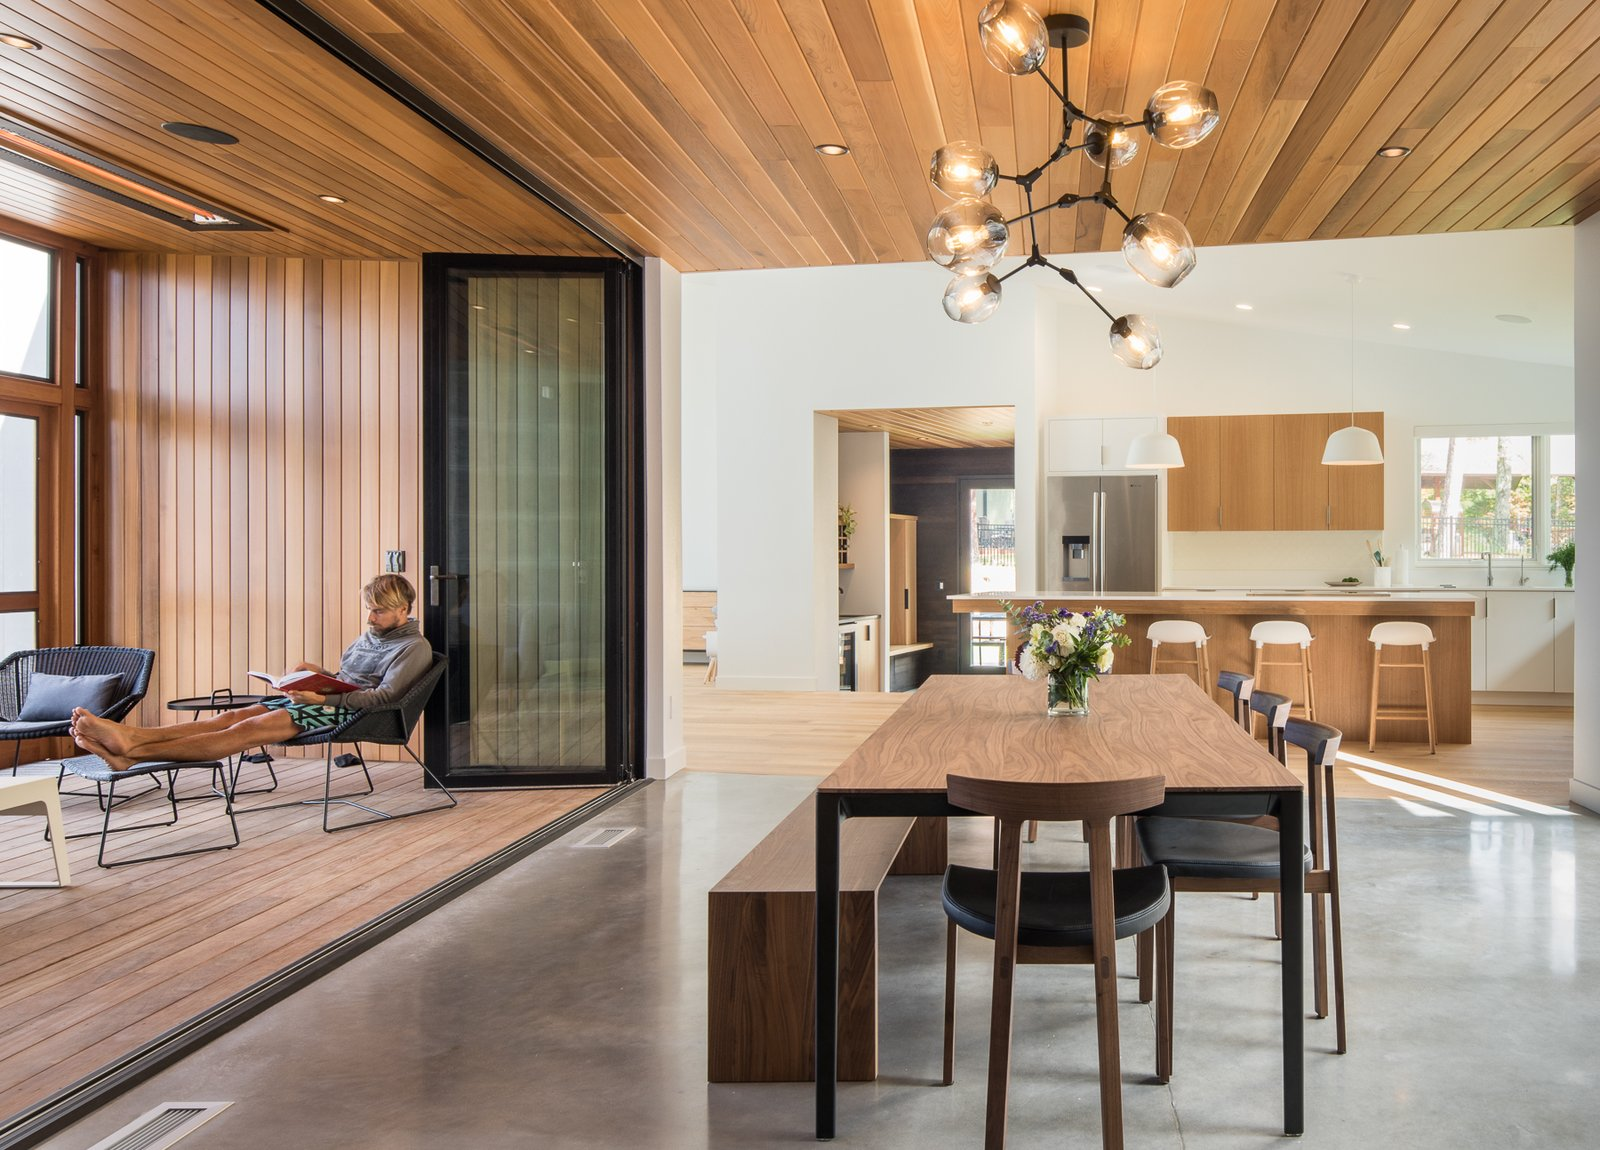 Dining Room, Bench, Chair, Pendant Lighting, Light Hardwood Floor, Concrete Floor, Table, and Ceiling Lighting  Northern Lake Home by Strand Design